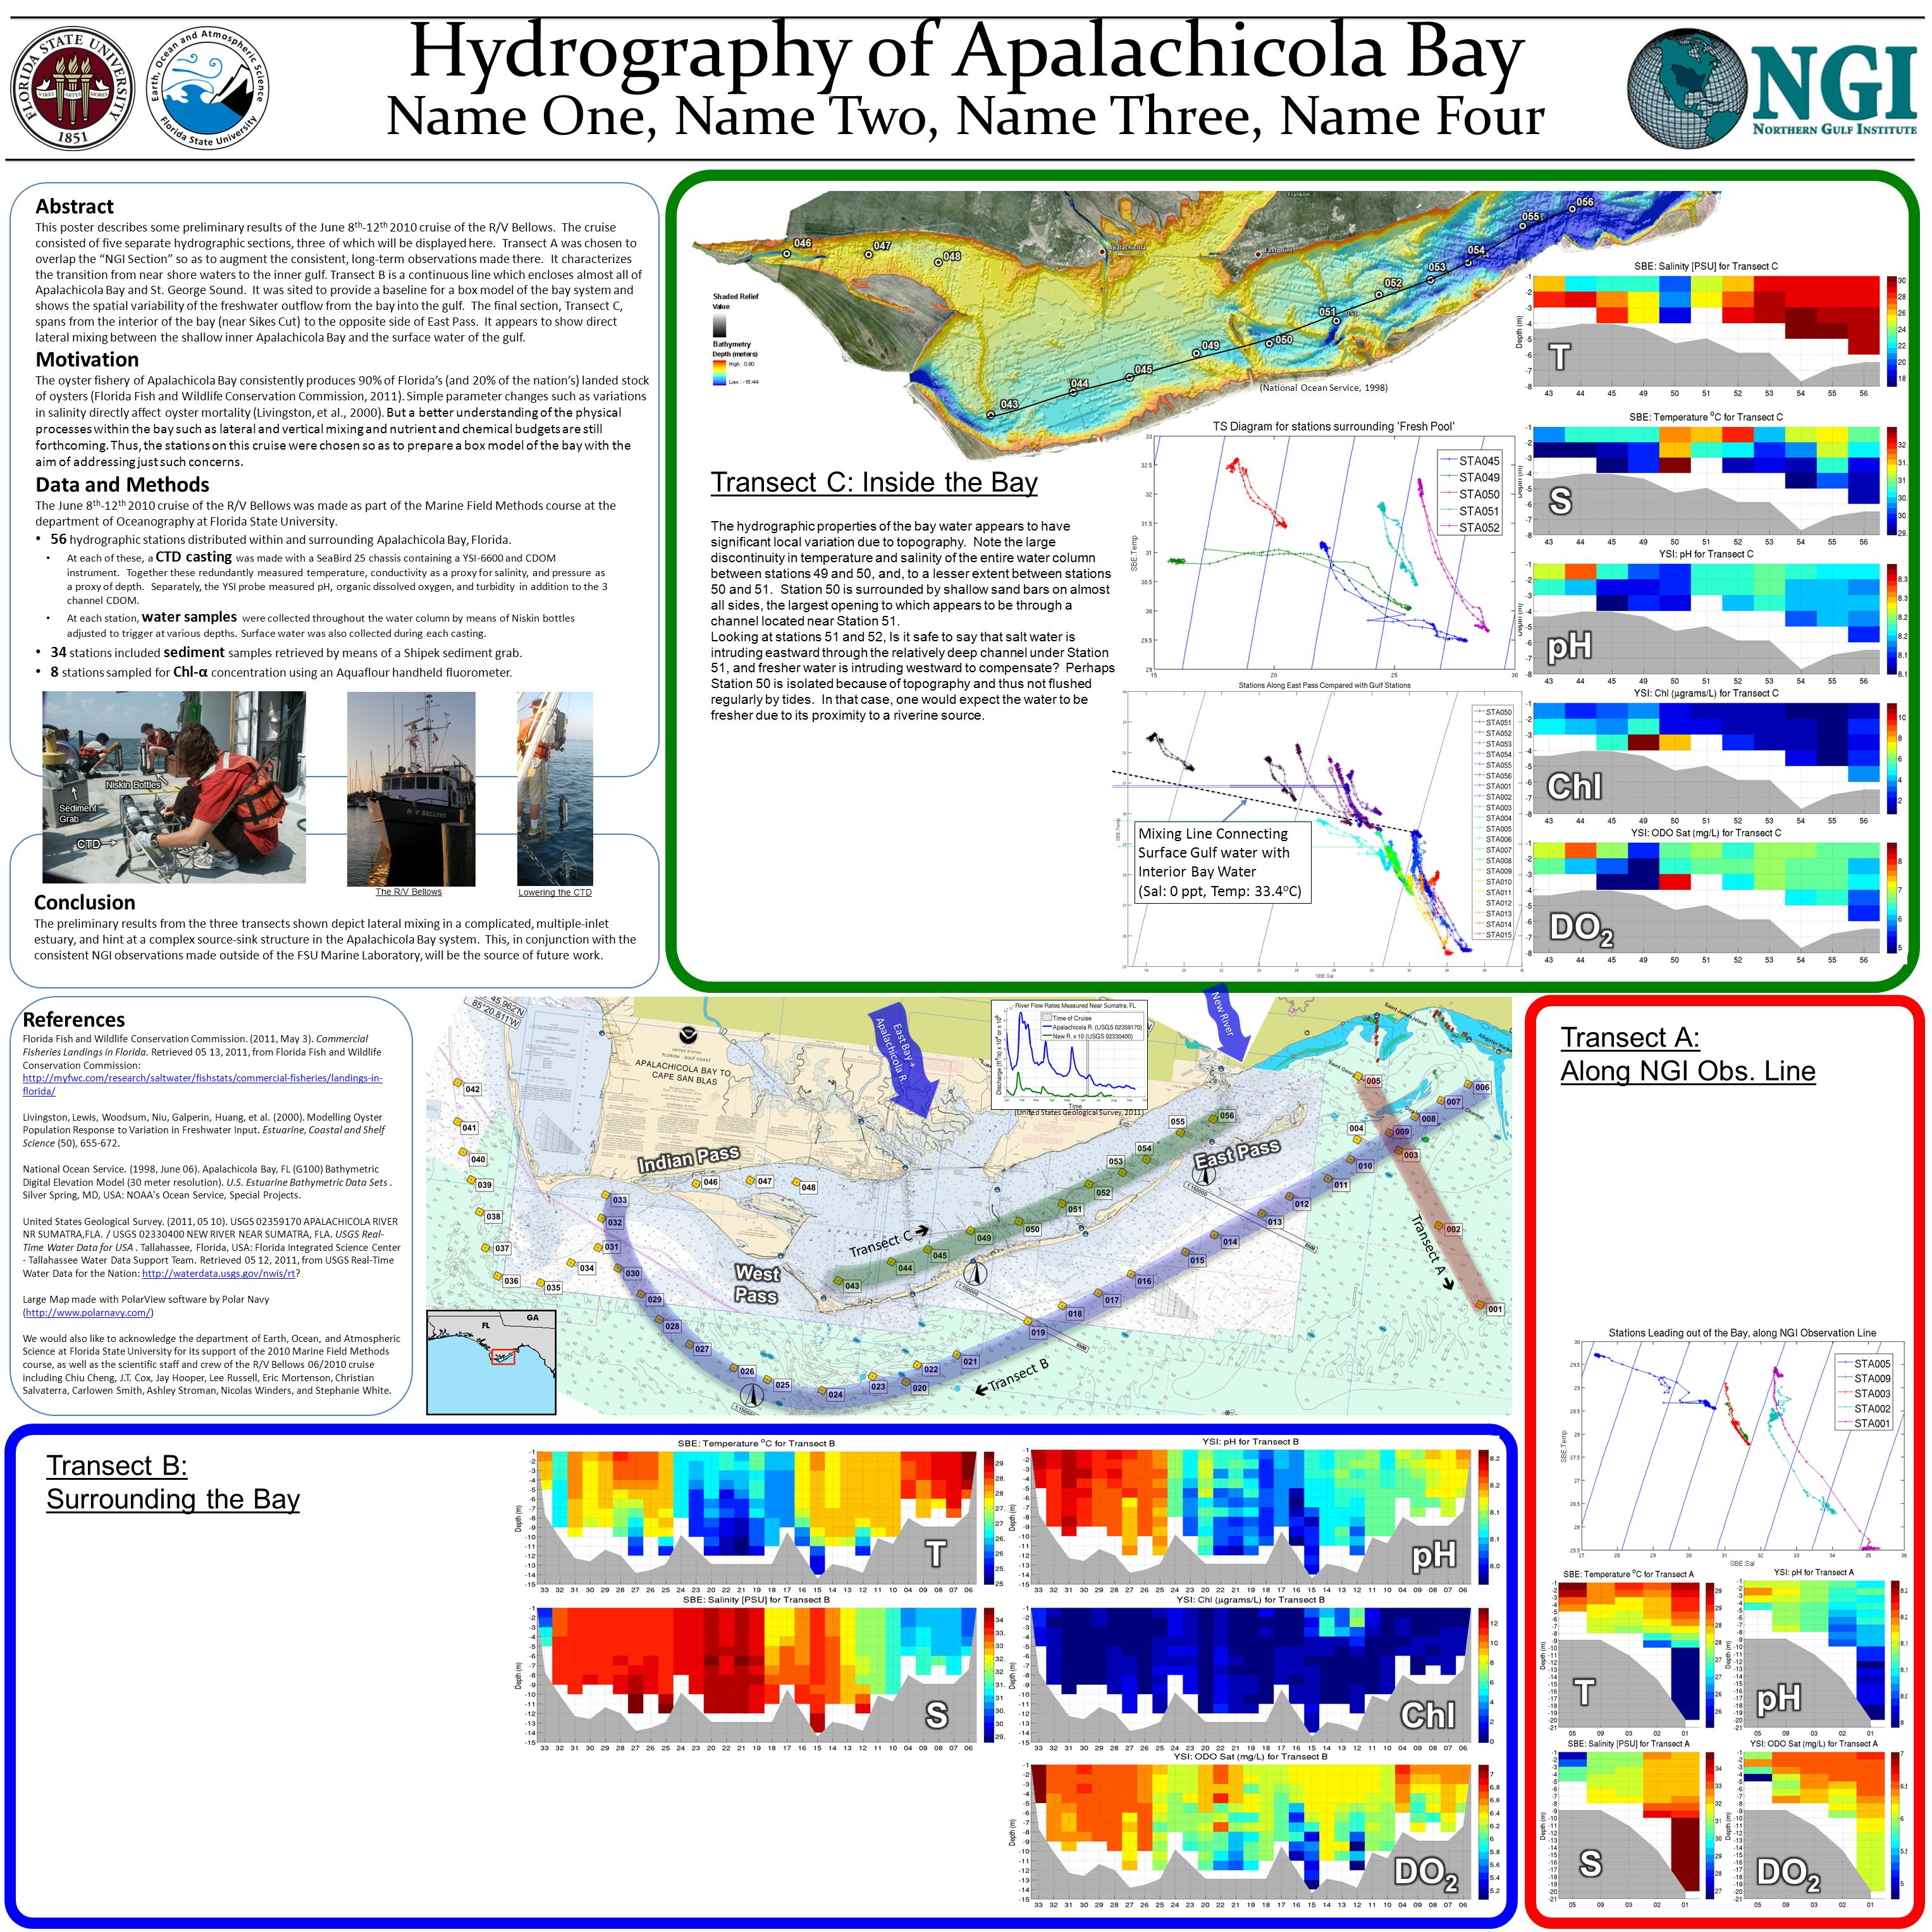 Transect C   Transect B Transect A  East Bay + Apalachicola R. New River Transect A: Along NGI Obs. Line Transect B: Surrounding the Bay Transect C